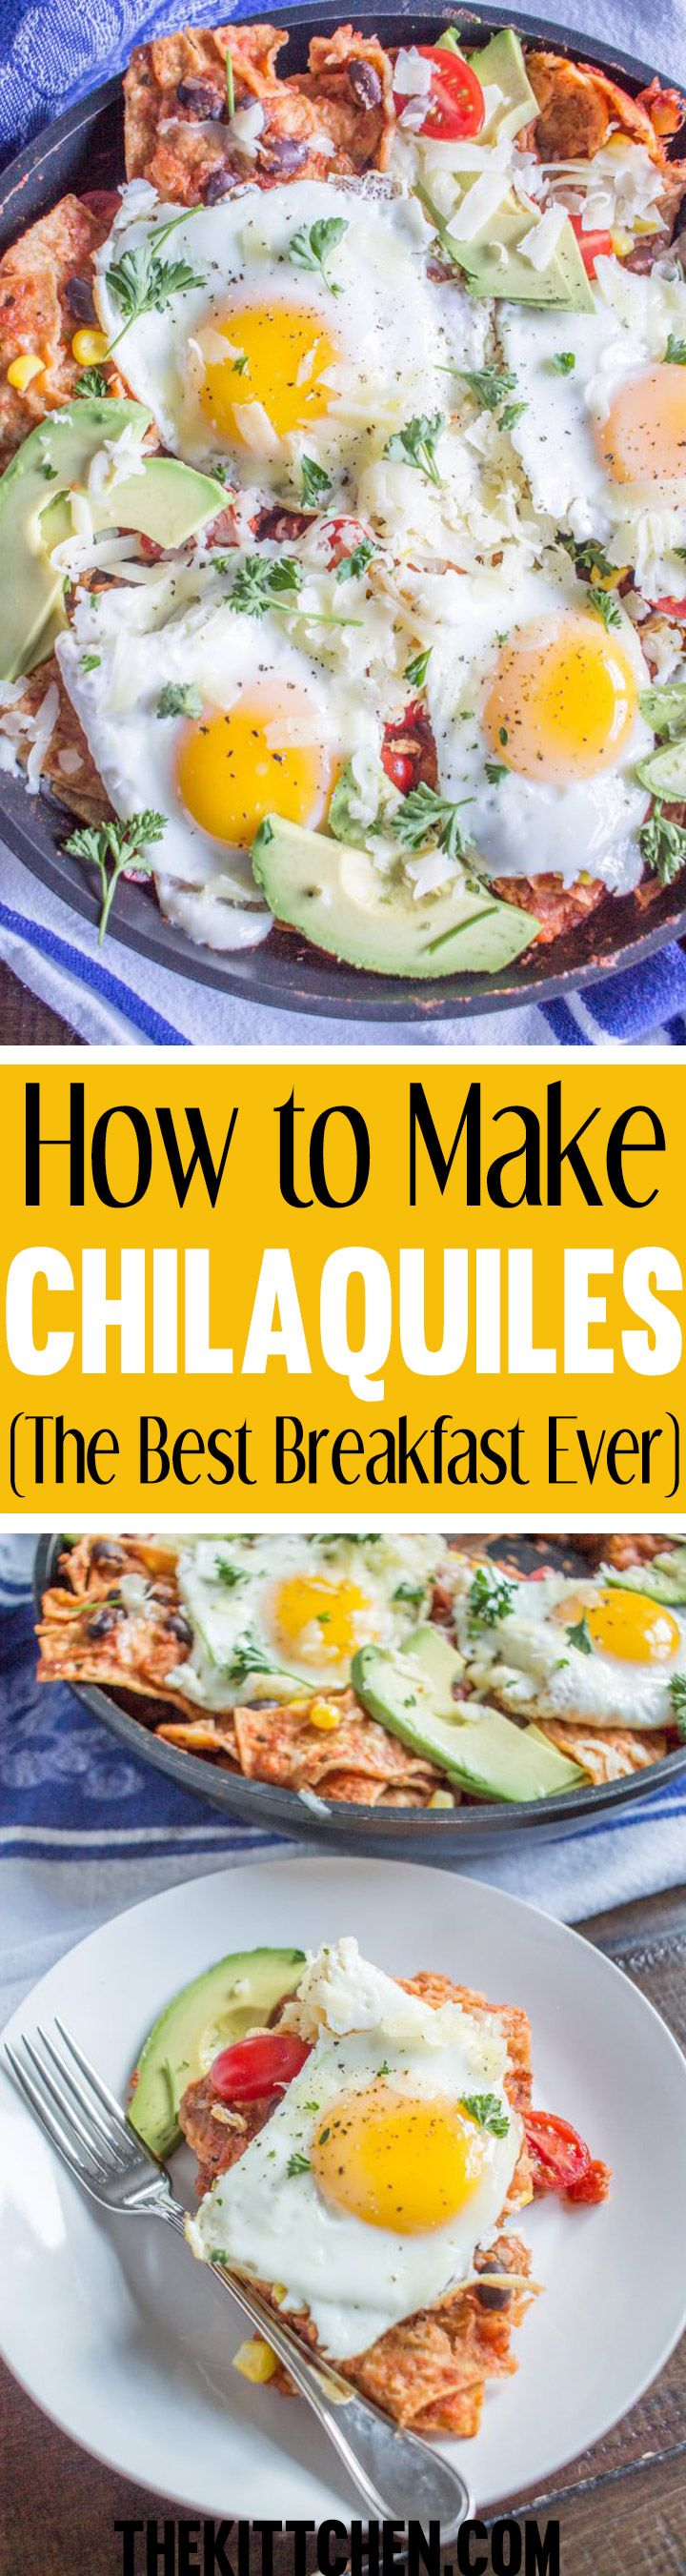 Click to learn how to make chilaquiles. In my humble opinion, this is the best breakfast ever. Plus, it is likely that you have all of the ingredients waiting for you in your kitchen. #breakfastrecipes ***** Chilaquiles recipe | Breakfast ideas | Breakfast recipes | Breakfast recipes healthy | Egg recipes